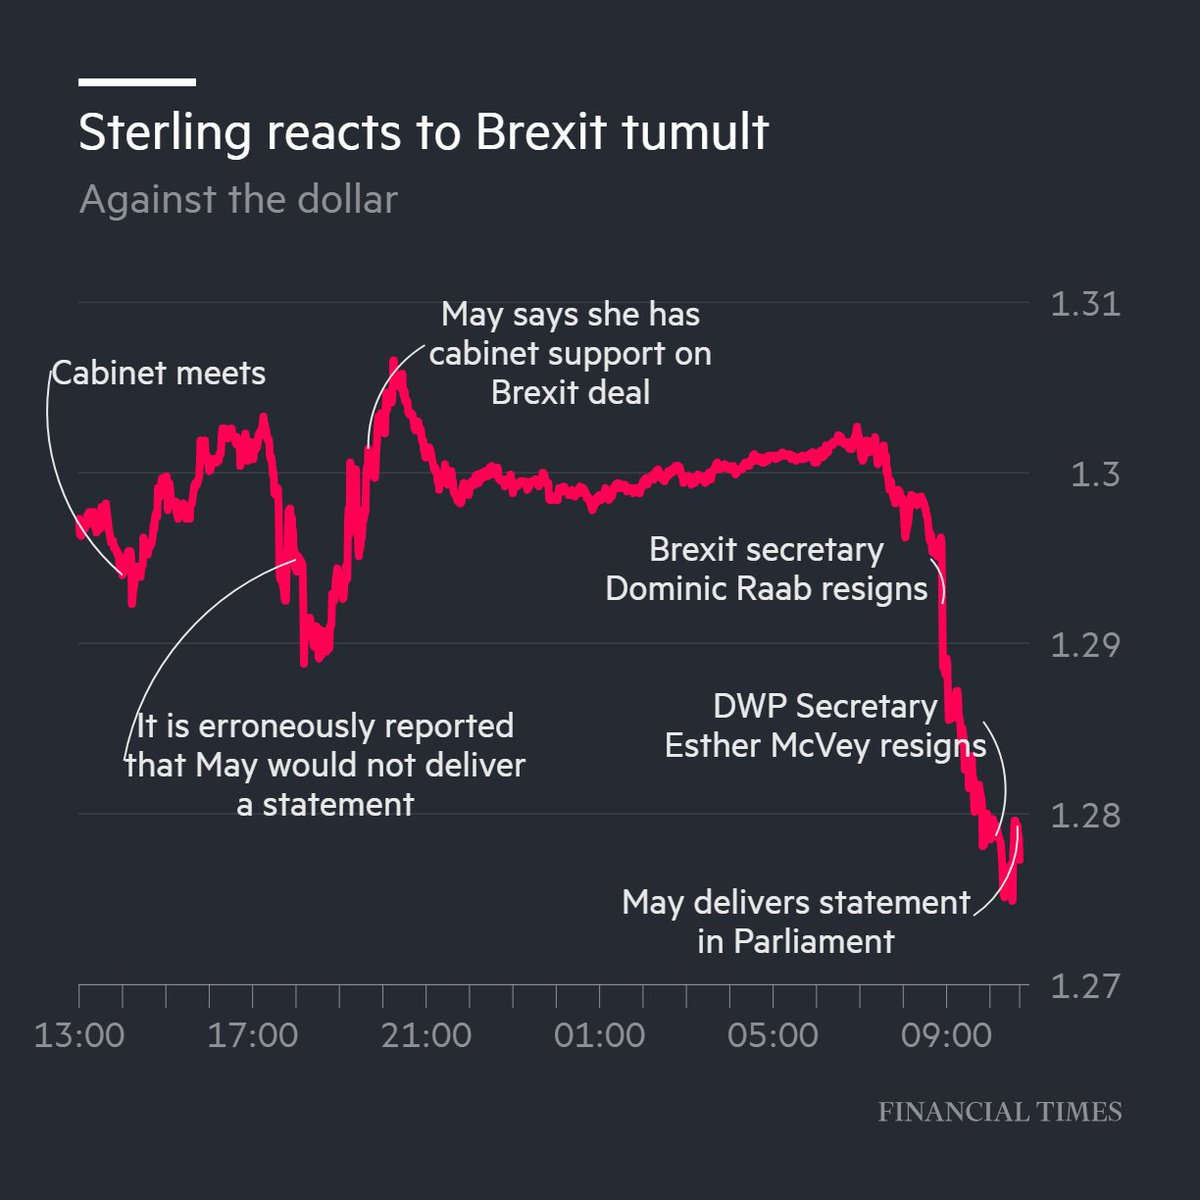 Sterling is on track for its biggest fall in 2 years in a big day for Theresa May and Brexit https://t.co/s3evZRid1o